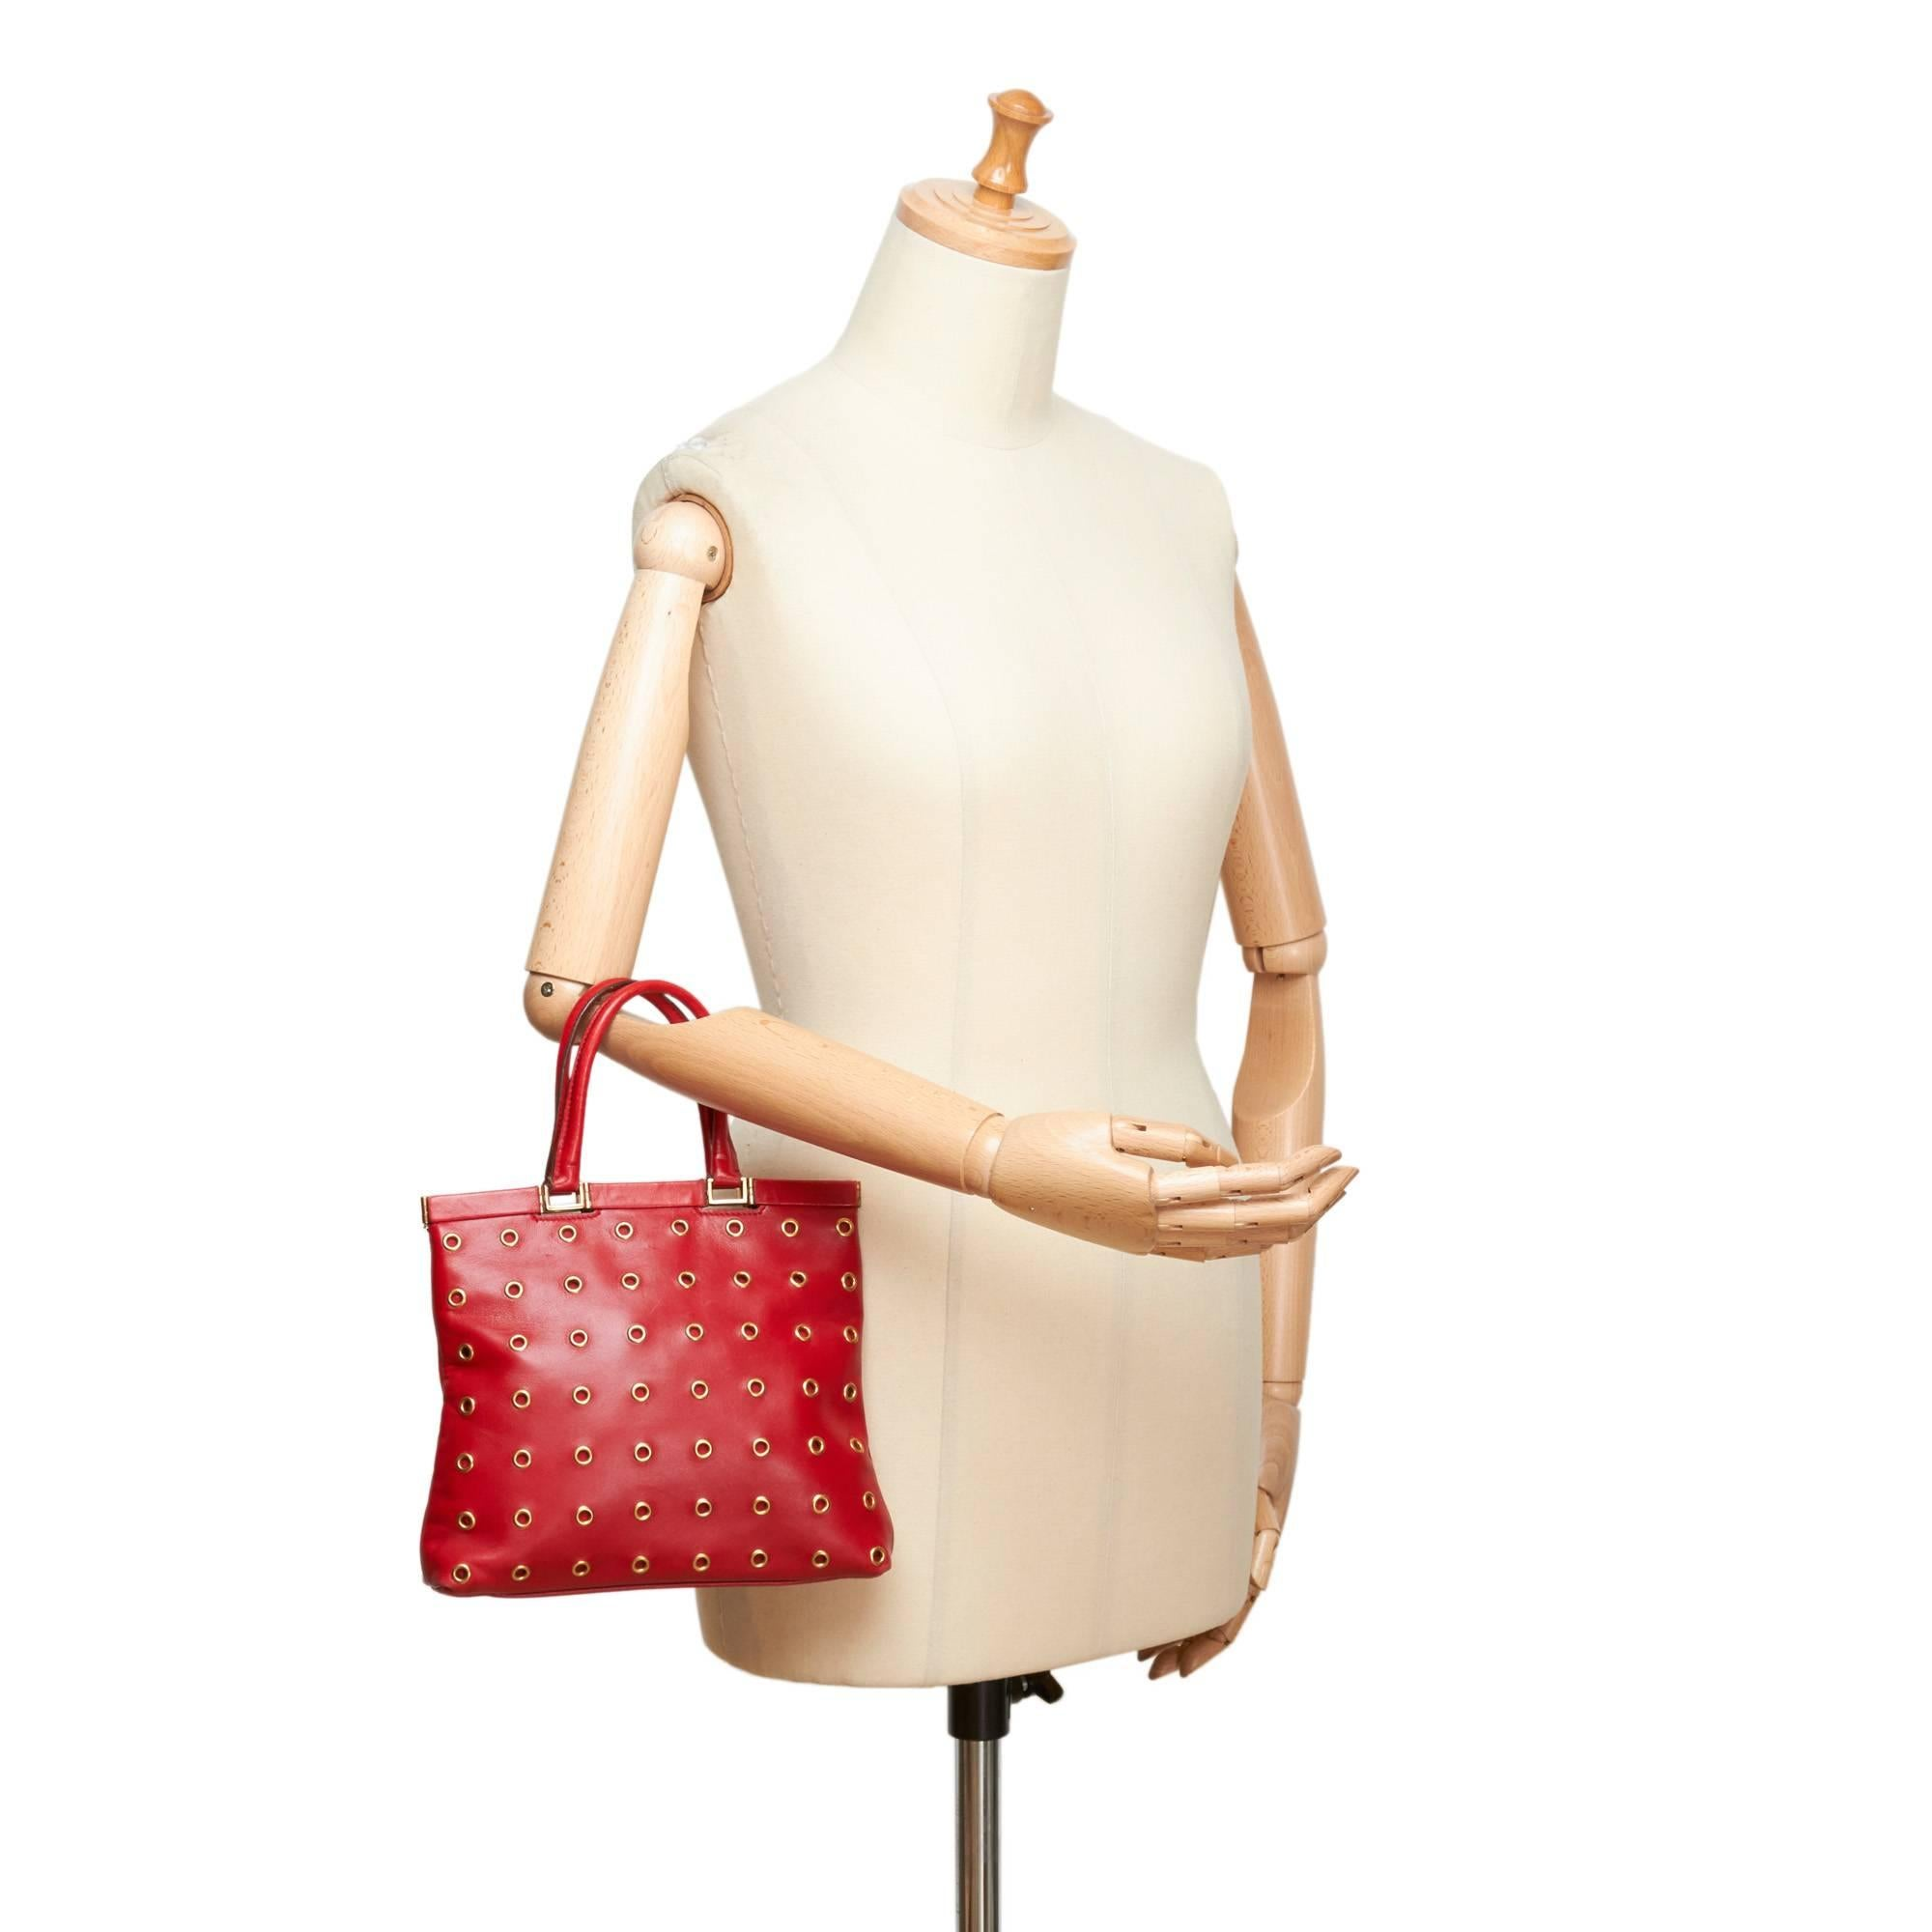 ... top quality prada red calf leather 18 carat gold toned eyelet handbag  for sale at 1stdibs 5fbd26bee3c86